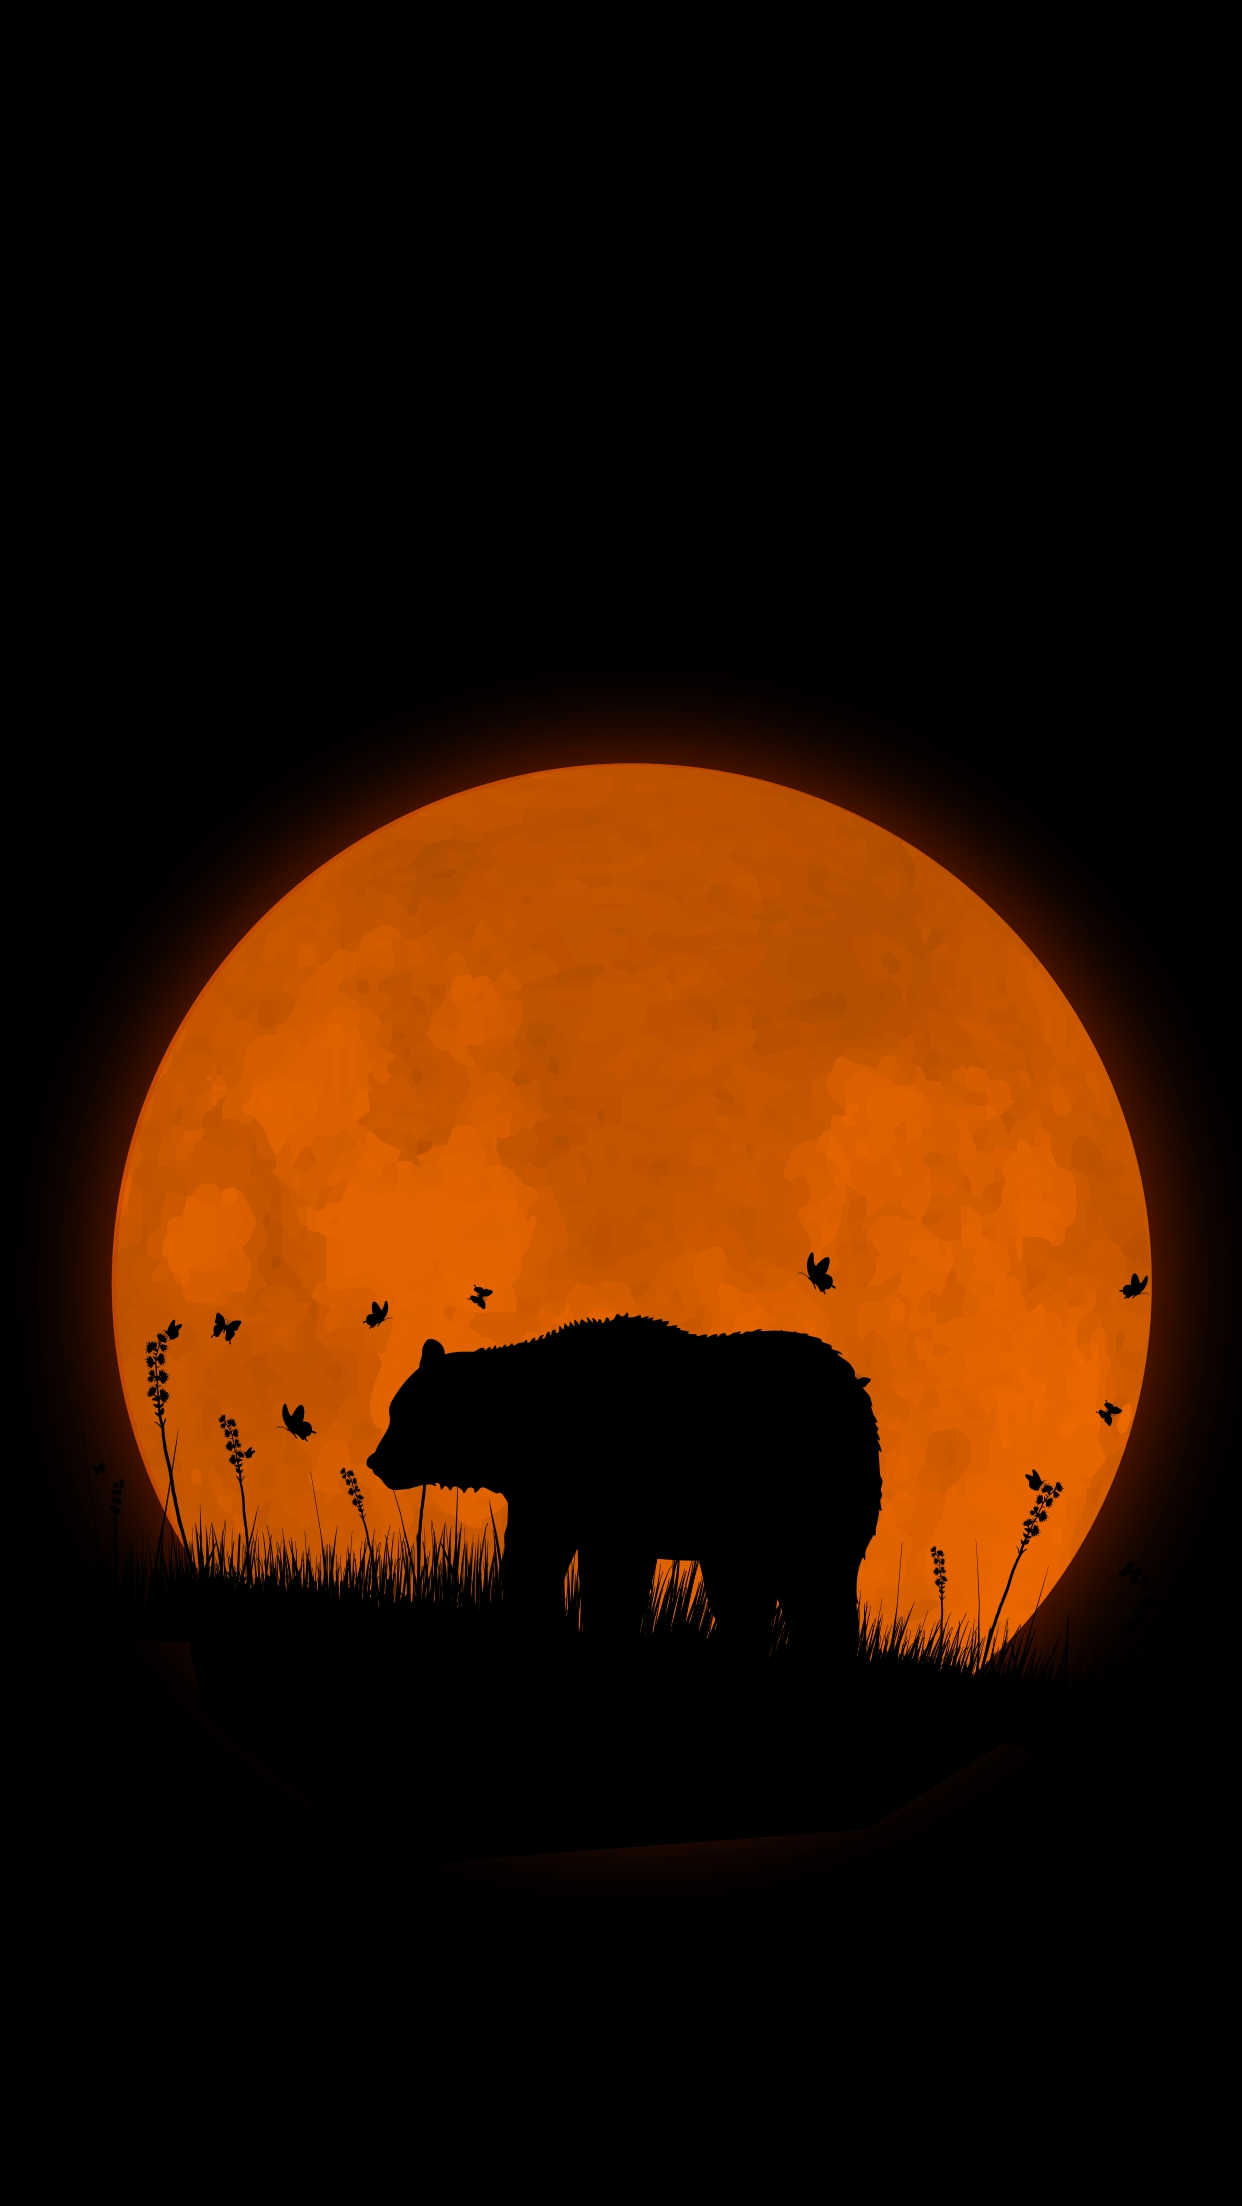 Wallpaper Cute For Phone Grizzly Bear Super Moon Iphone Wallpaper Iphone Wallpapers